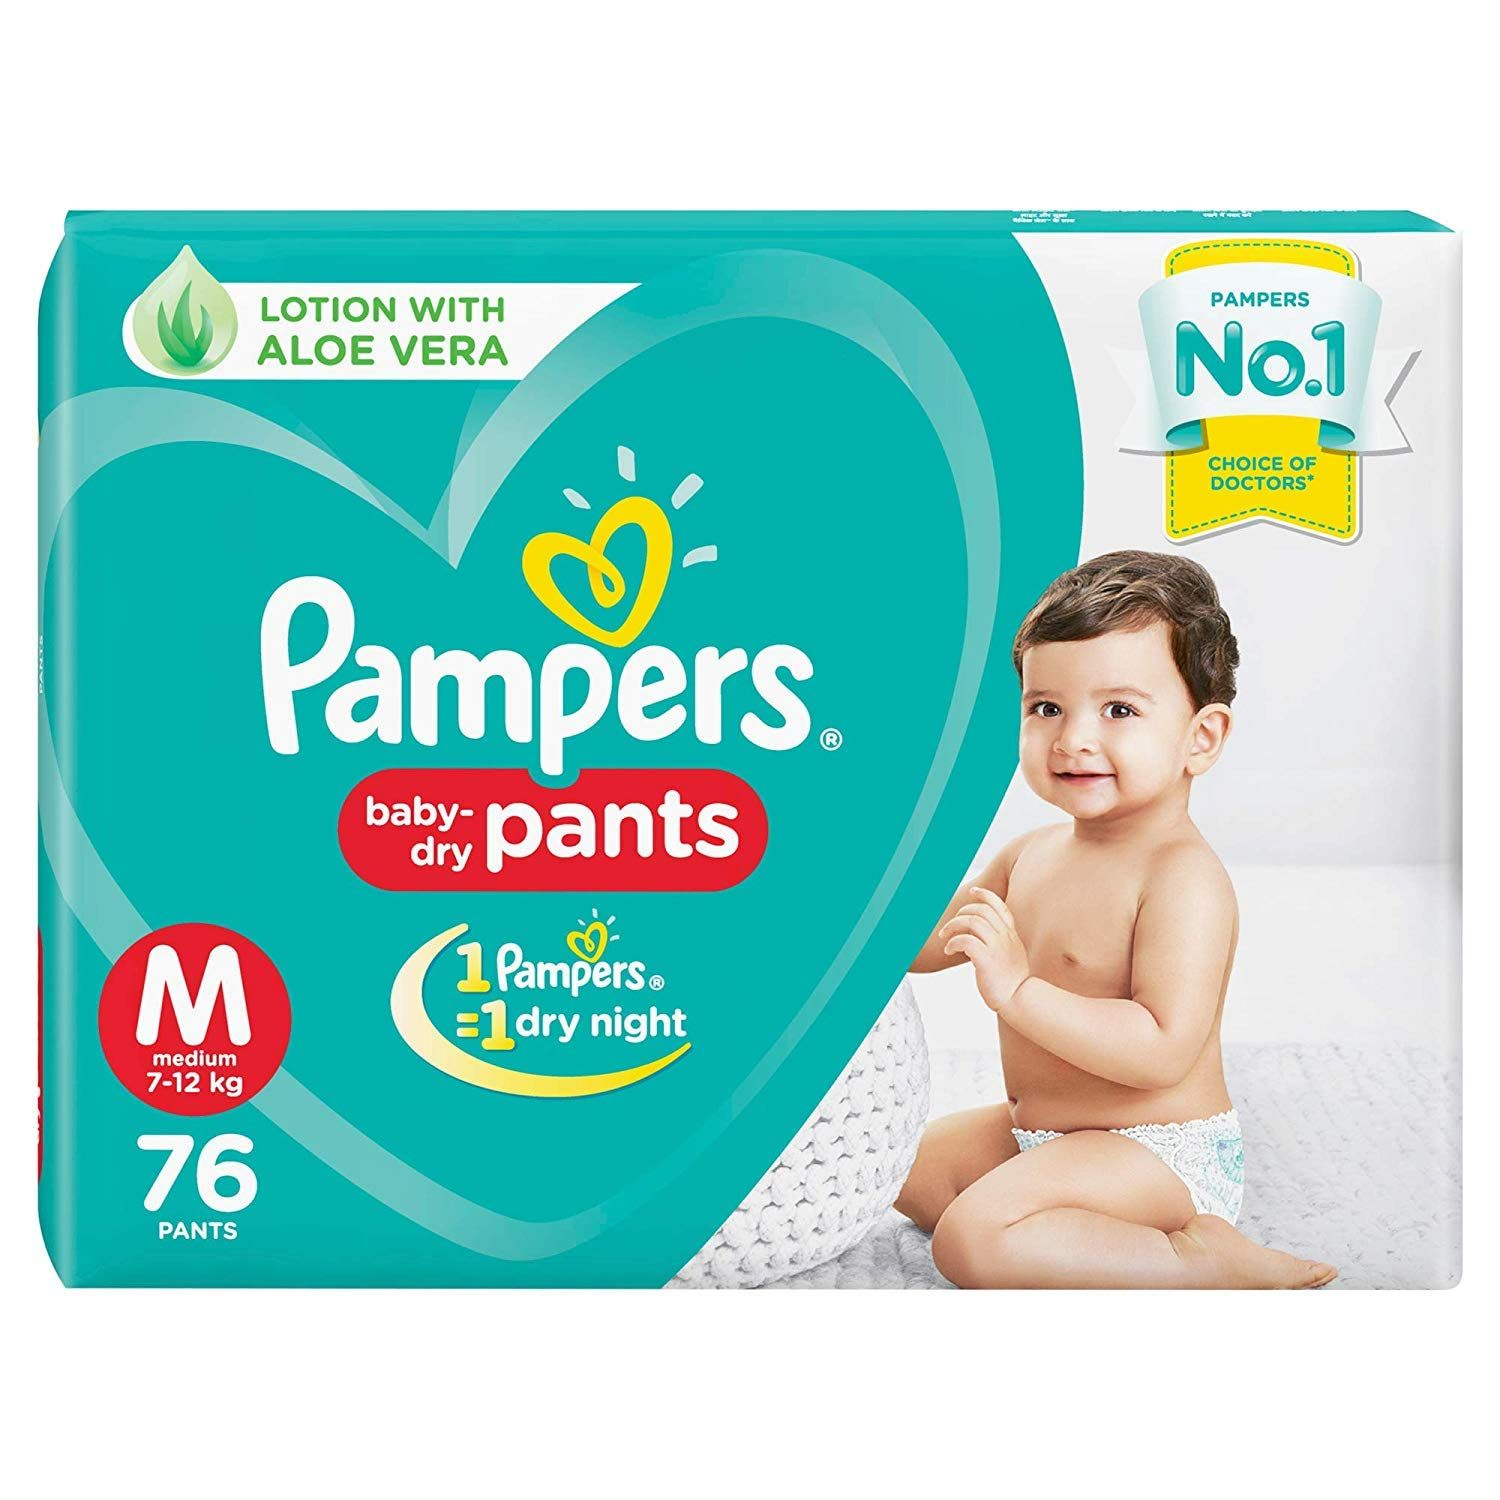 Pampers New Diapers Pants Medium 76 Count By Pampers Pampers Pampers Diapers Diaper